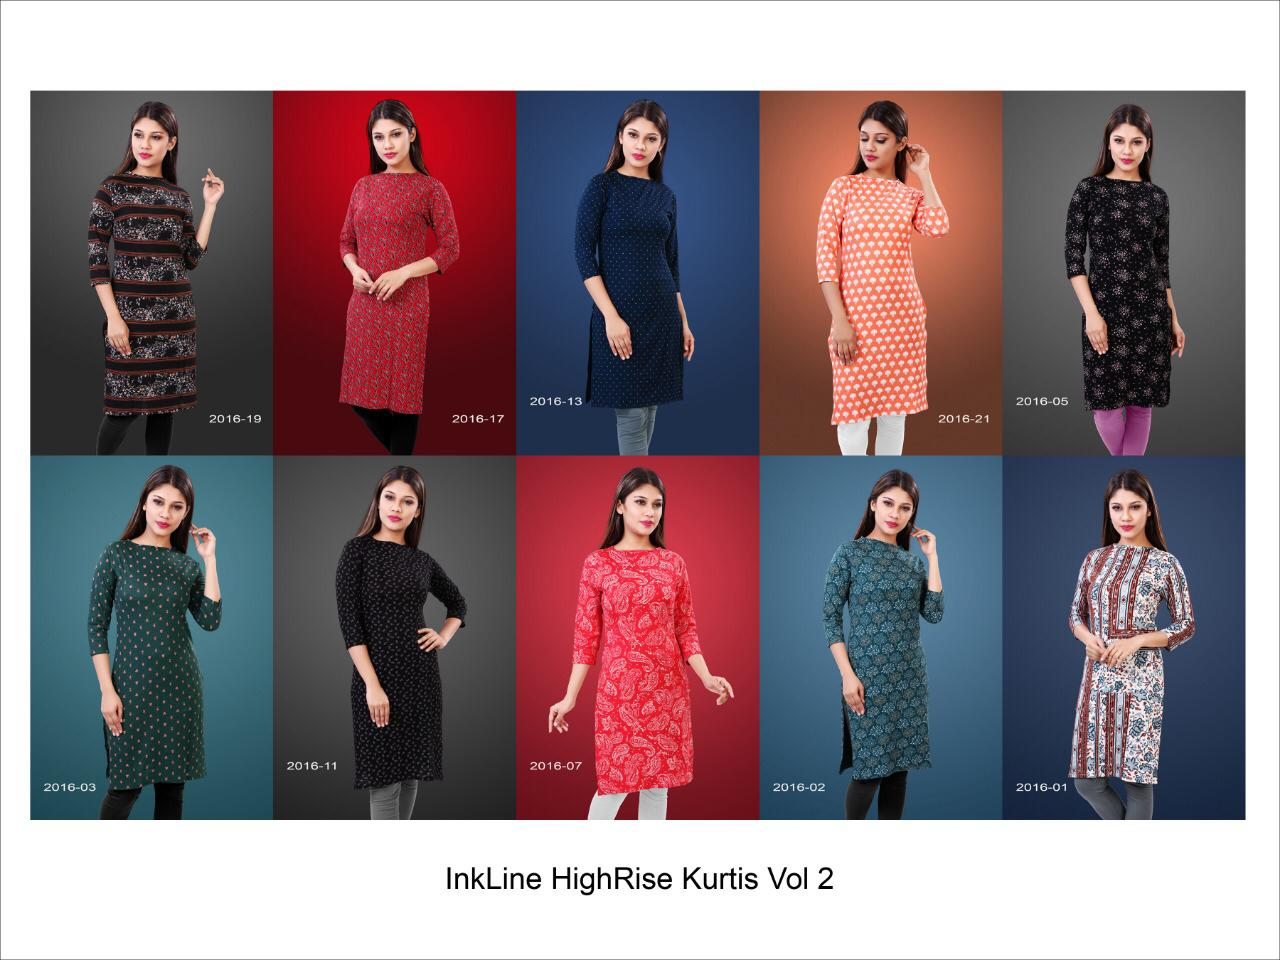 Inkline Highrise Vol 2 collection 6